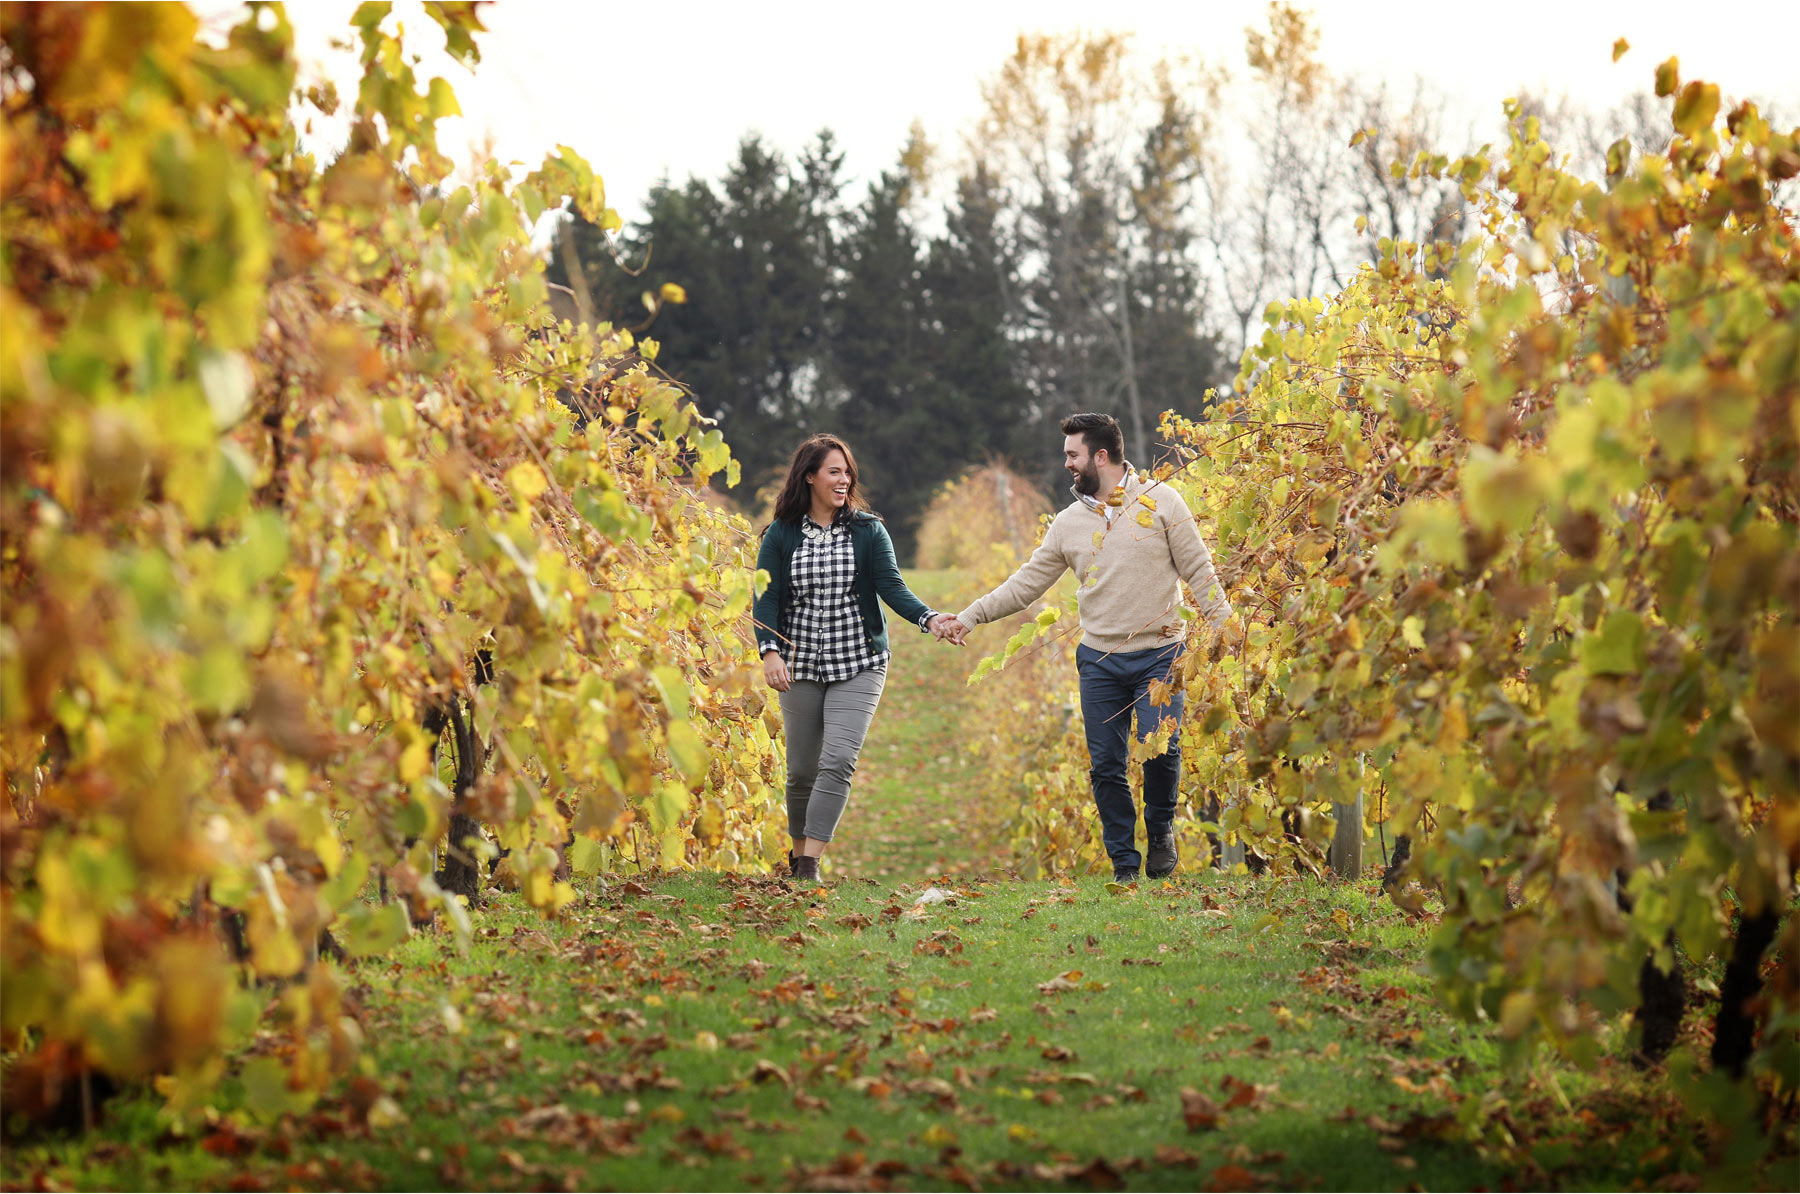 05-Stillwater-Minnesota-Wedding-Photographer-by-Andrew-Vick-Photography-Fall-Autumn-Engagement-Bride-Groom-Apple-Orchard-Vineyard-Hand-Holding-Vintage-Gillian-and-Nick.jpg